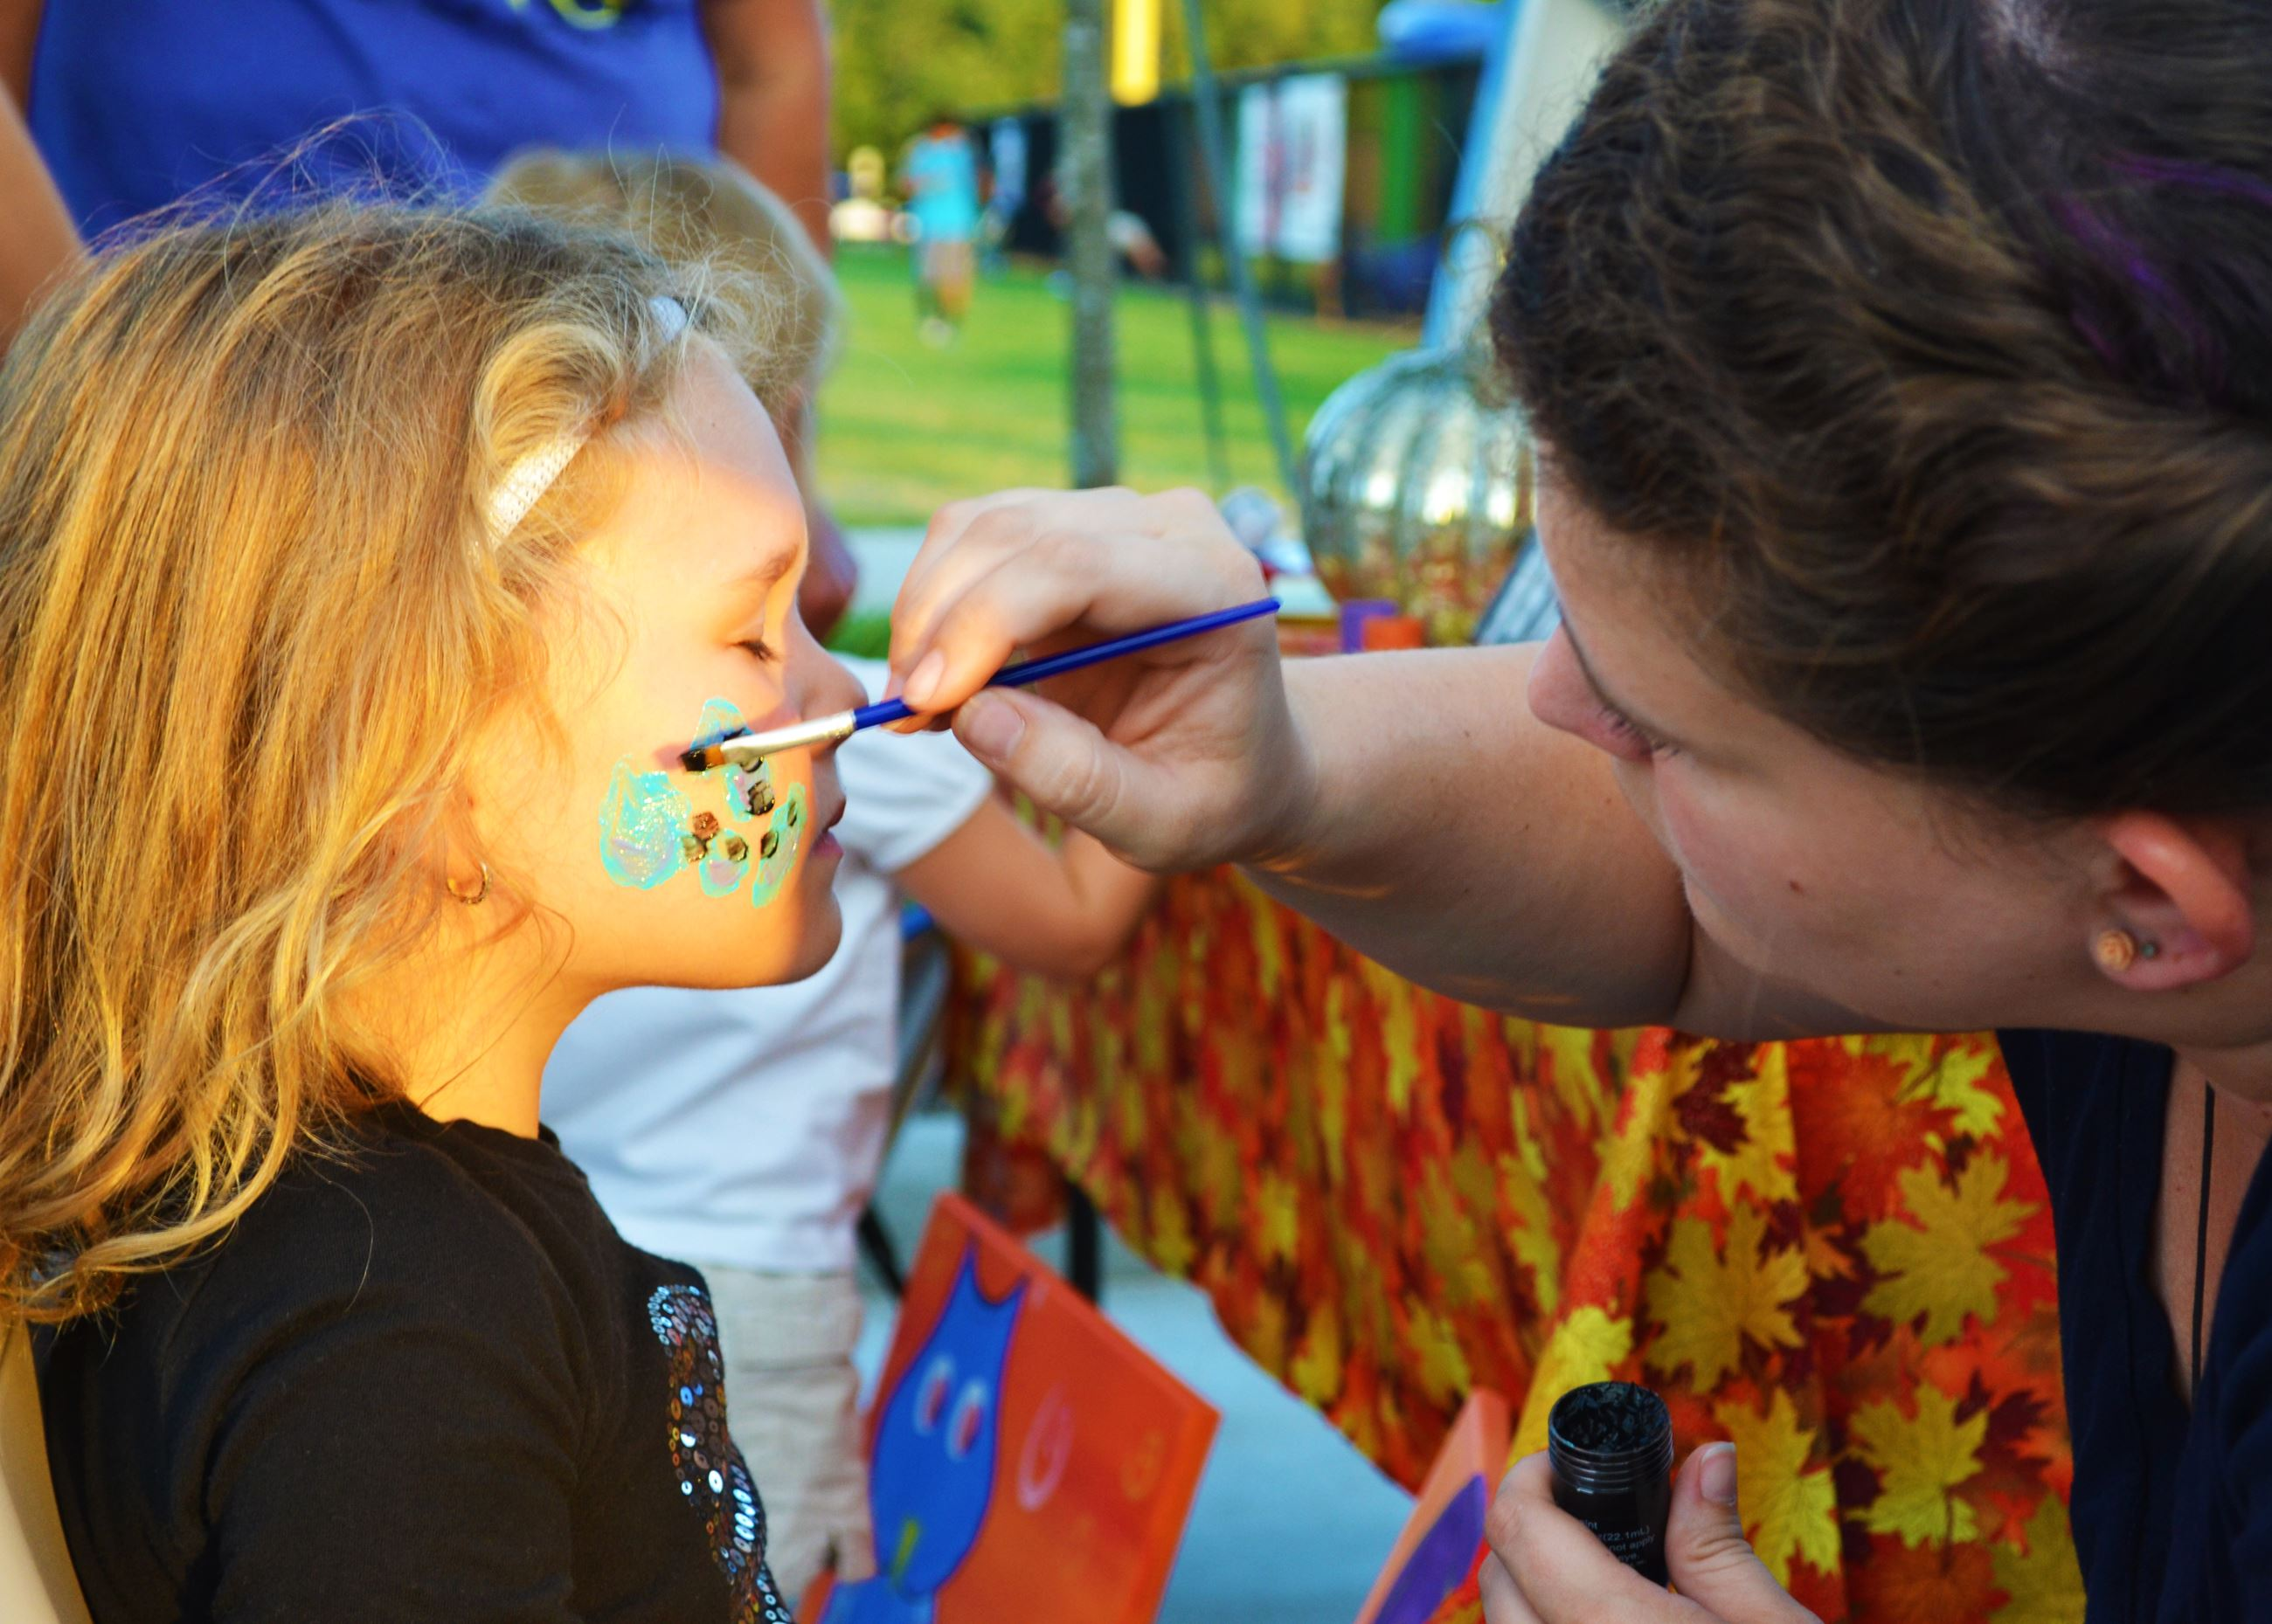 A lady paints a child's face